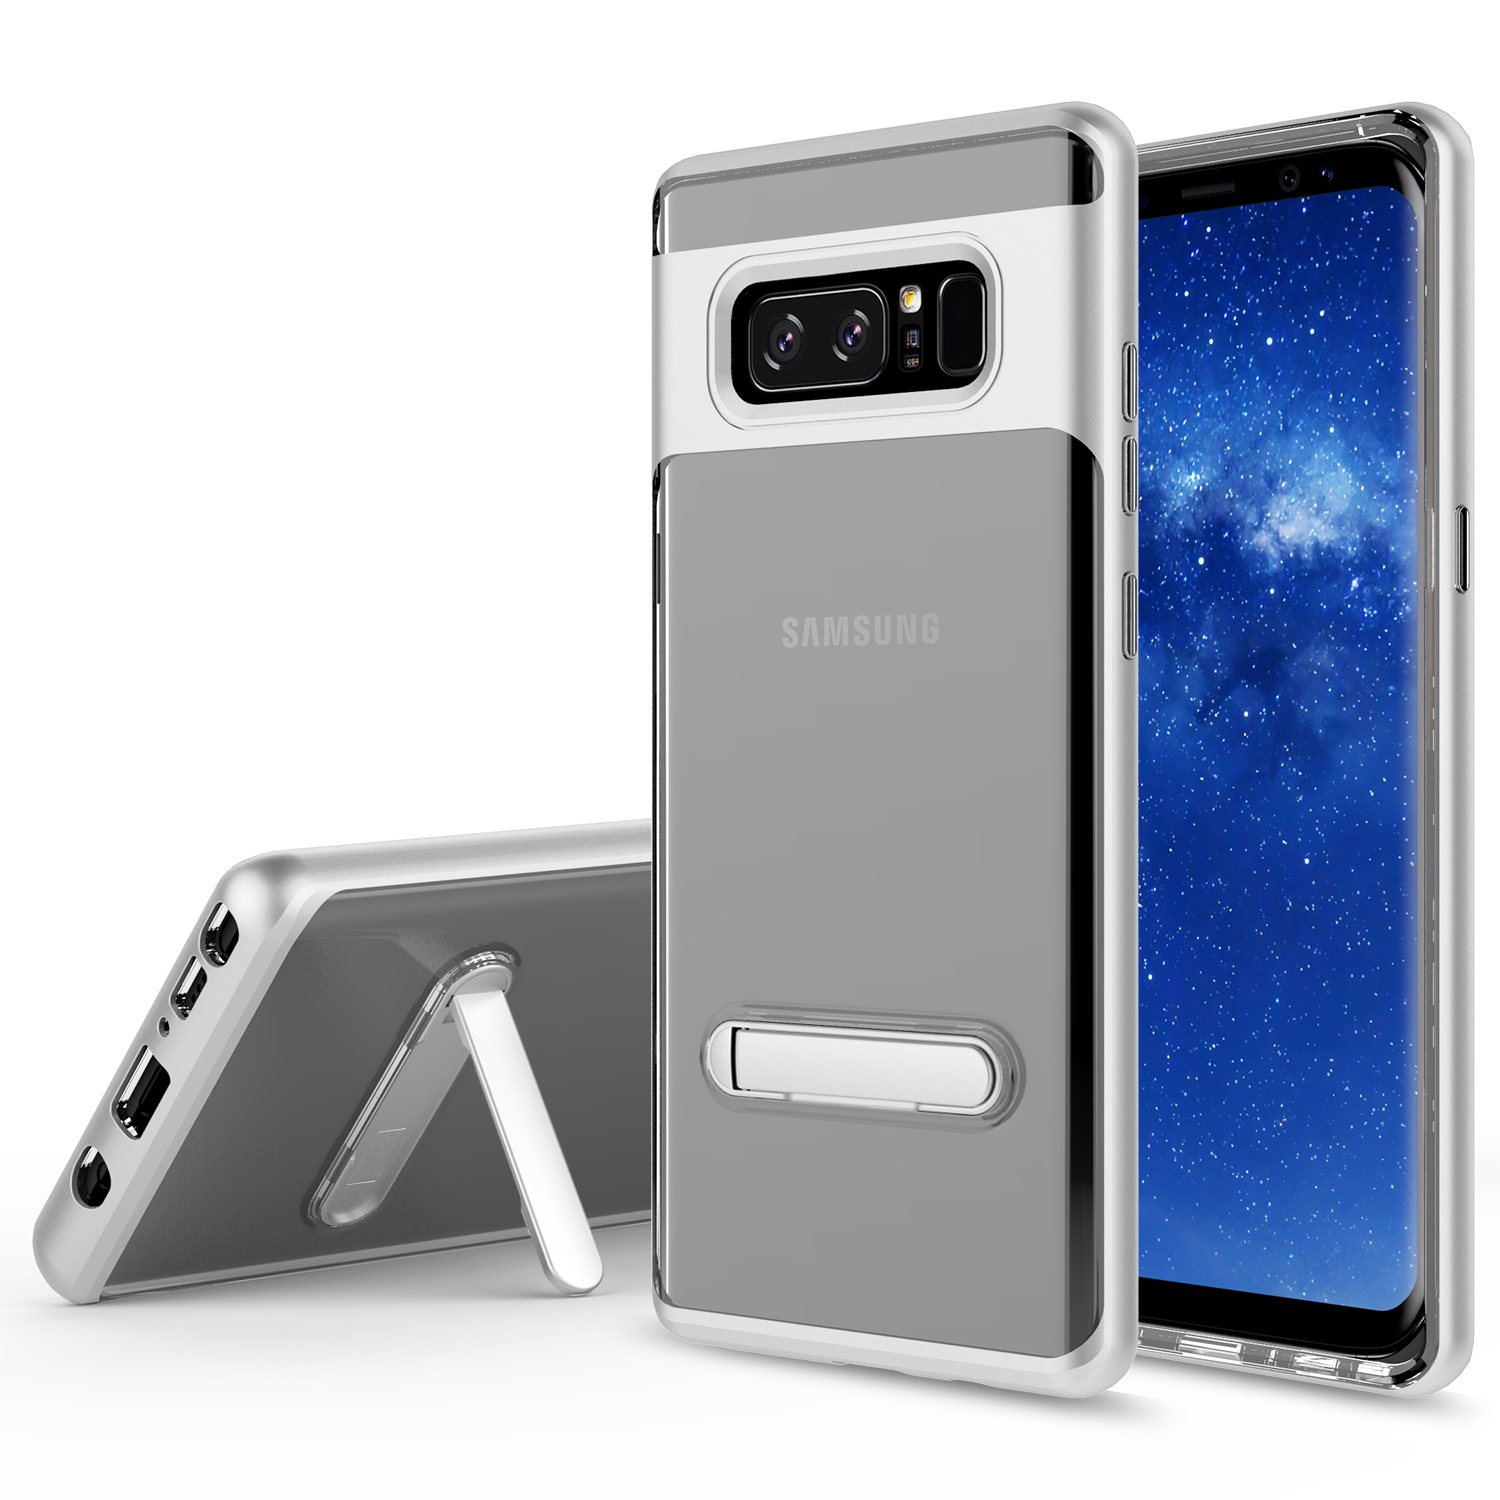 Galaxy Note 8 Case, KAESAR Crystal Clear Hard Ultra Slim fit Anti Scratch Bumper with Magnetic Metal Kickstand Protective Case Cover for for Samsung Galaxy Note 8 (SILVER)